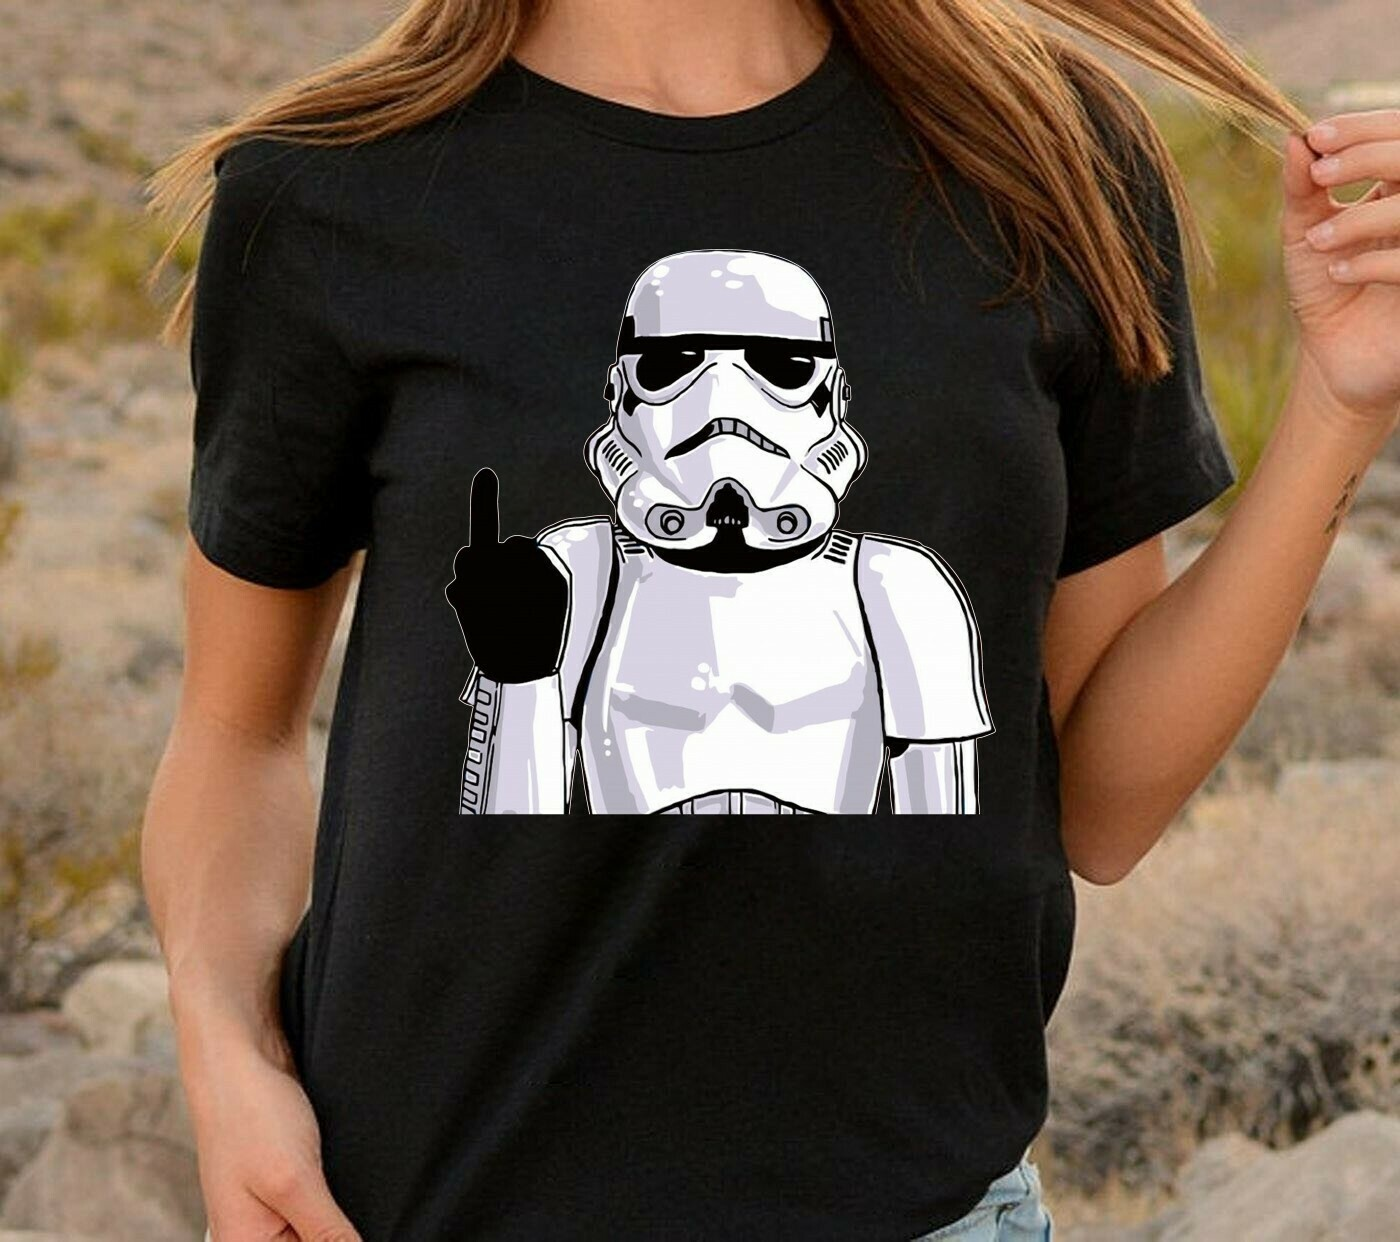 Star Wars Imperial Stormtrooper helmet Middle Finger Funny Meme Men's Sugar Skull Darth on Holiday Vader Storm Trooper Stormtrooper T-shirt Long Sleeve Sweatshirt Hoodie Jolly Family Gifts